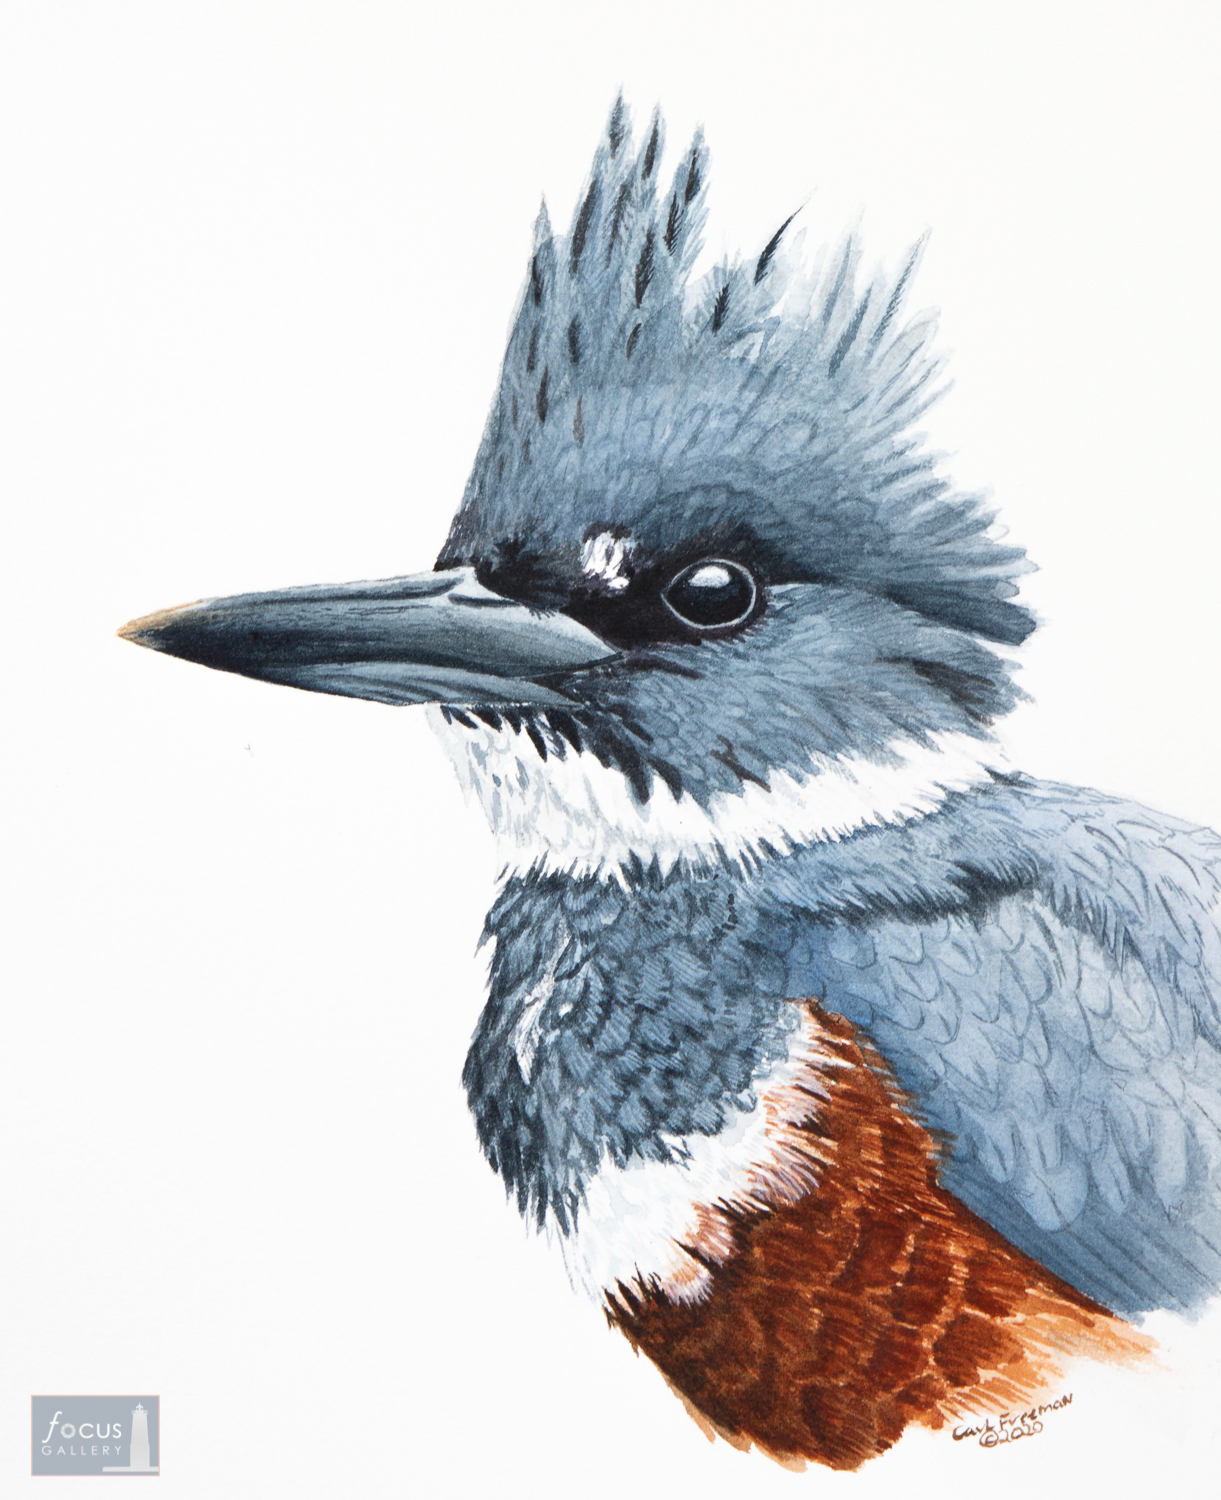 Original watercolor painting of the detail of a Belted Kingfisher's head.